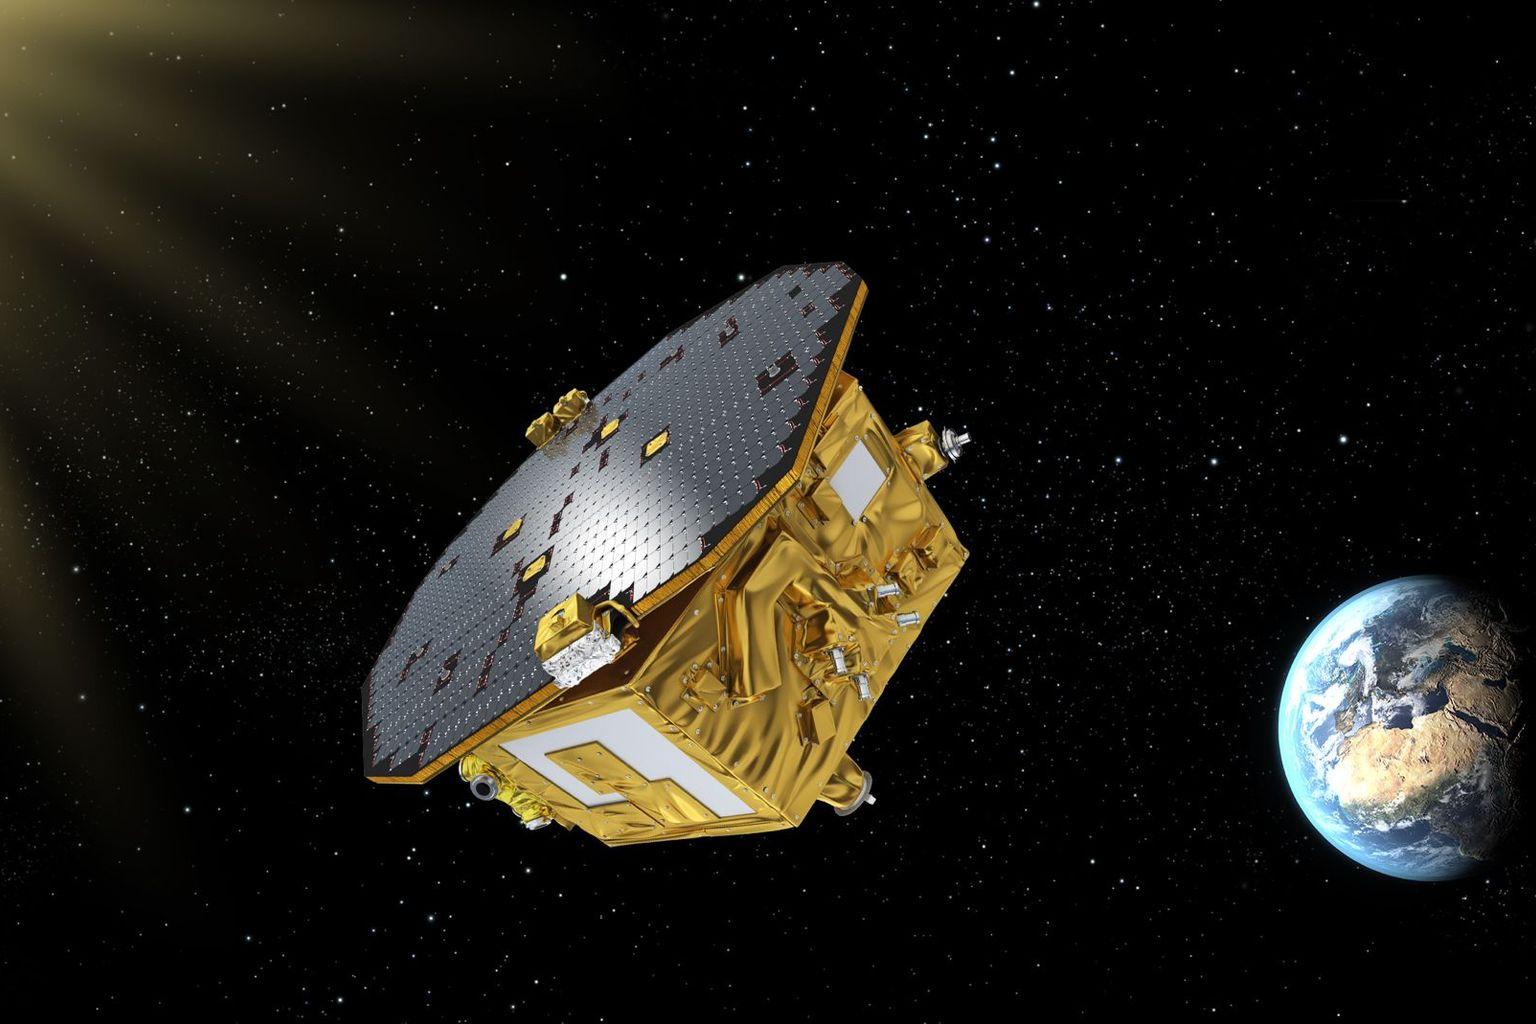 Visualization of LISA Pathfinder in space.